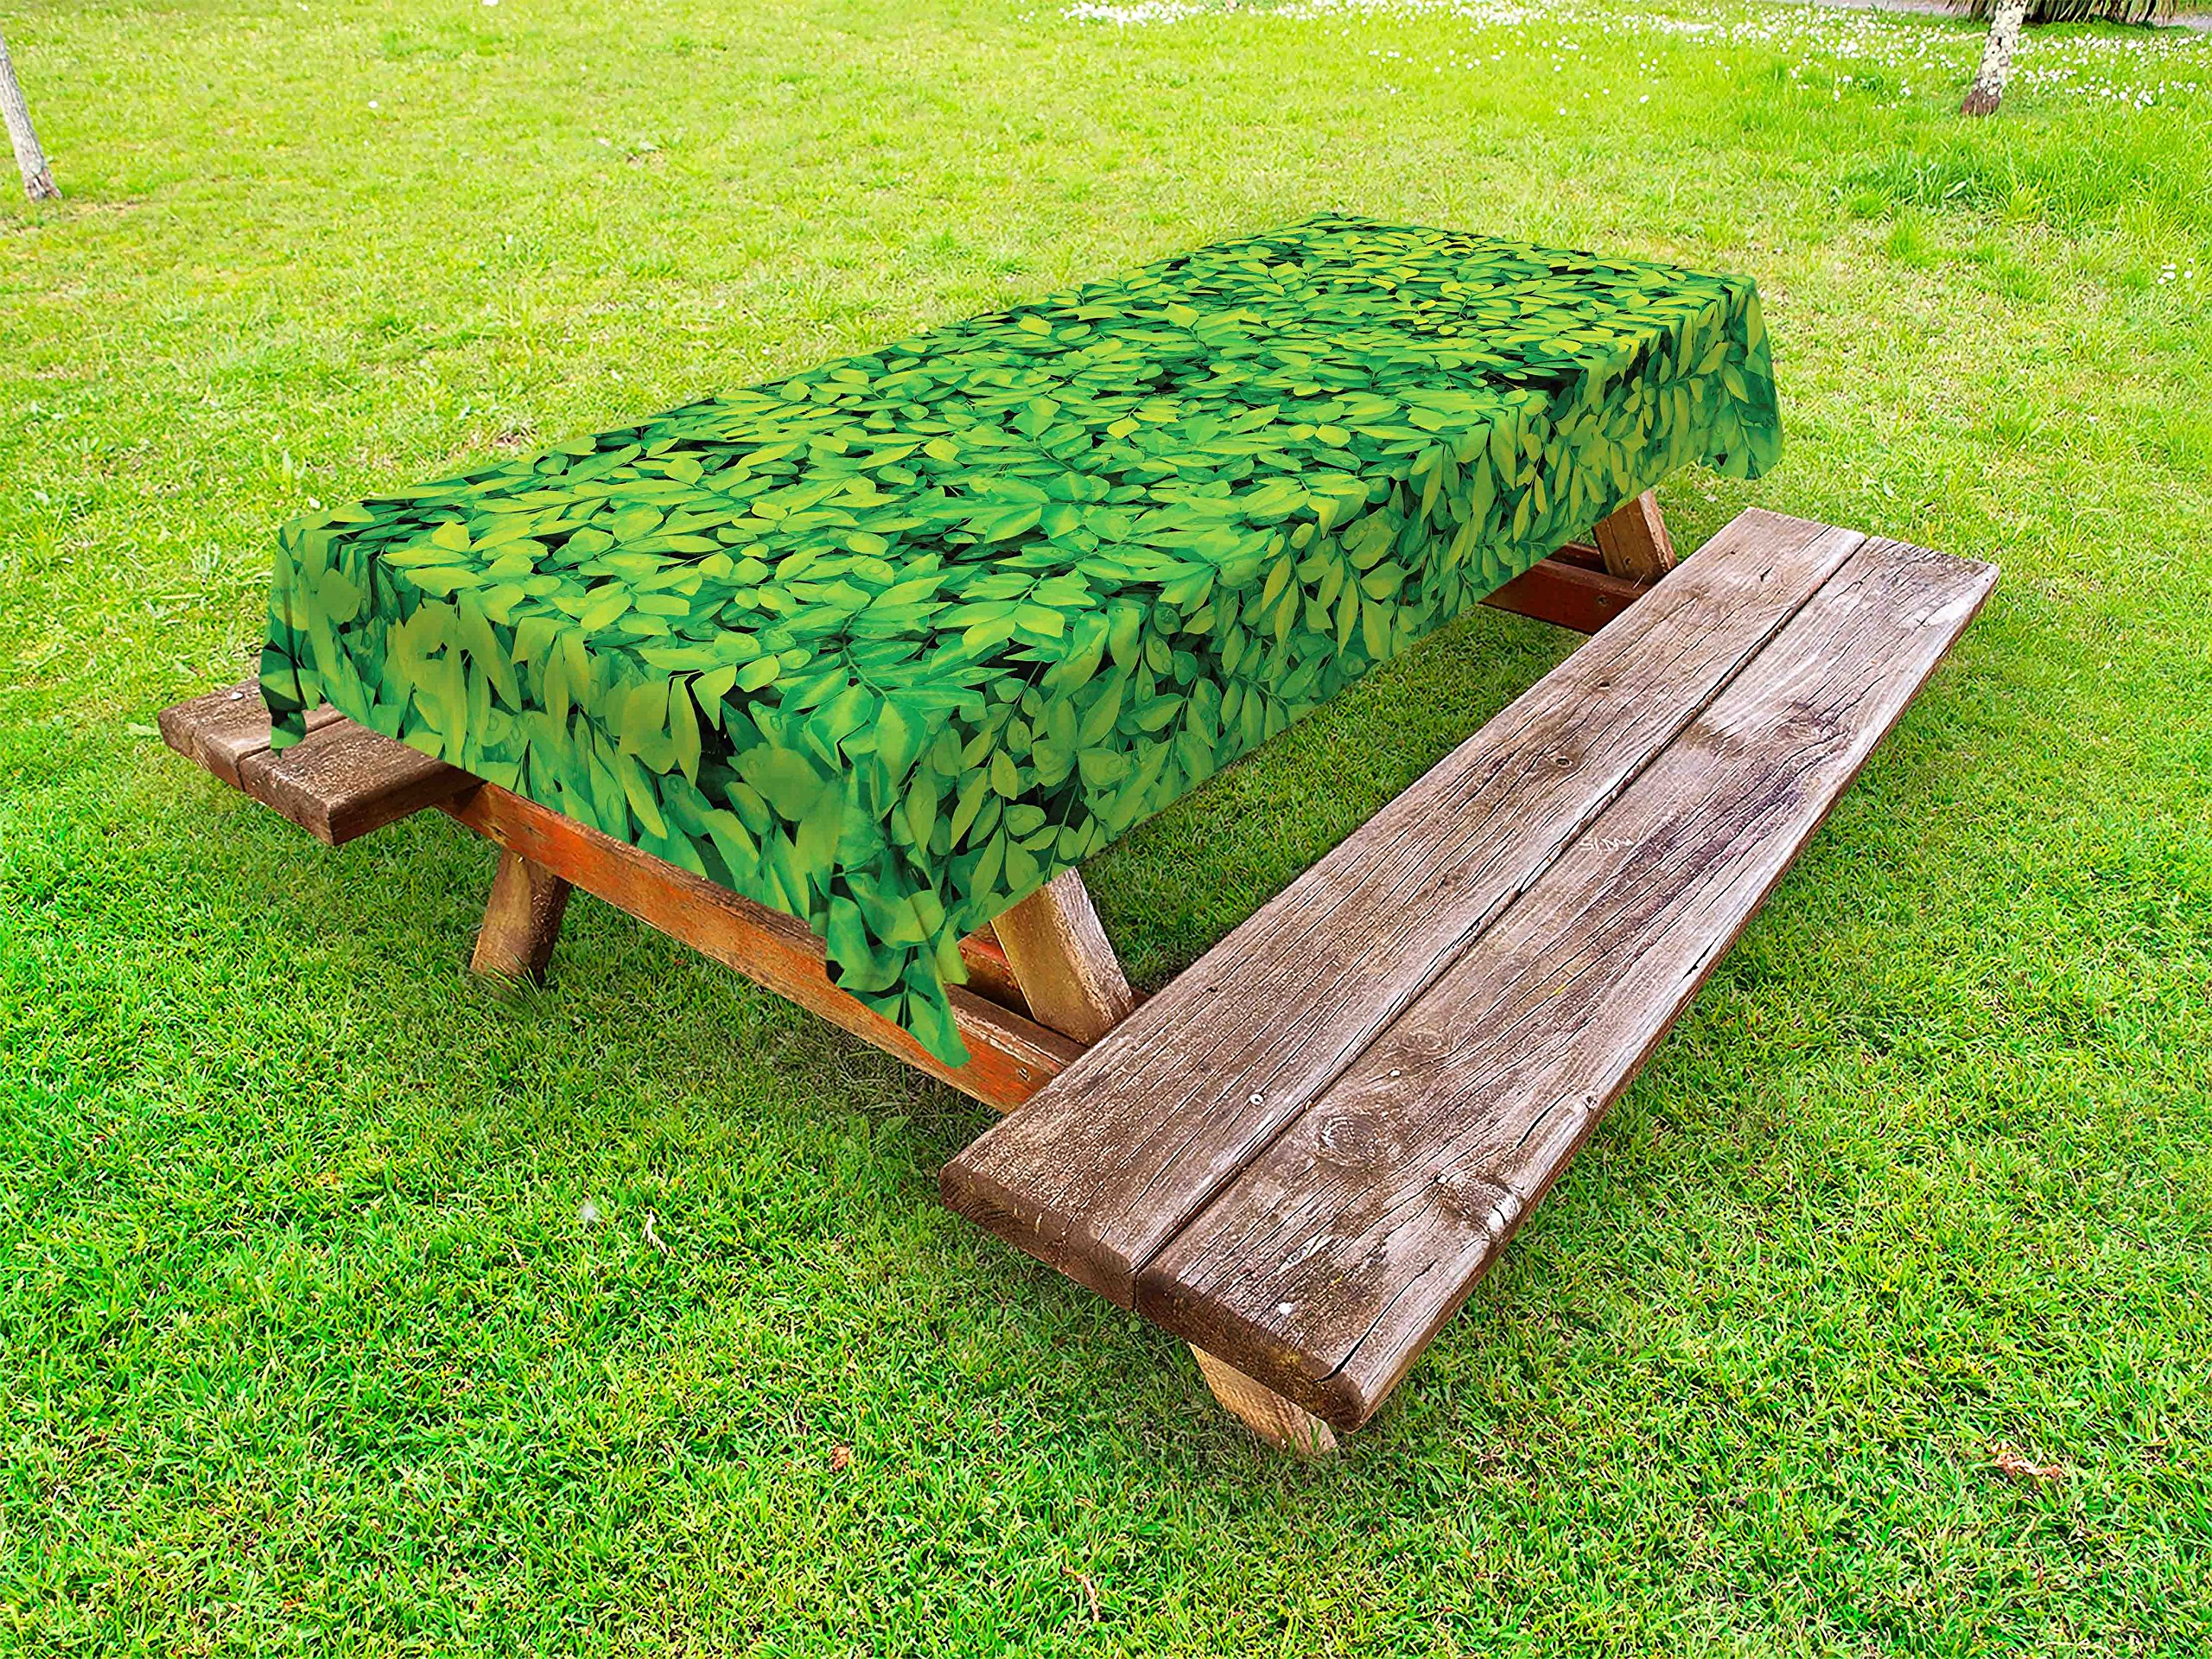 Lunarable Green Outdoor Tablecloth, Fresh Garden Forest Little Leaves Lush Growth Organic Nature Outdoors Woods Plant, Decorative Washable Picnic Table Cloth, 58 X 104 inches, Lime Green